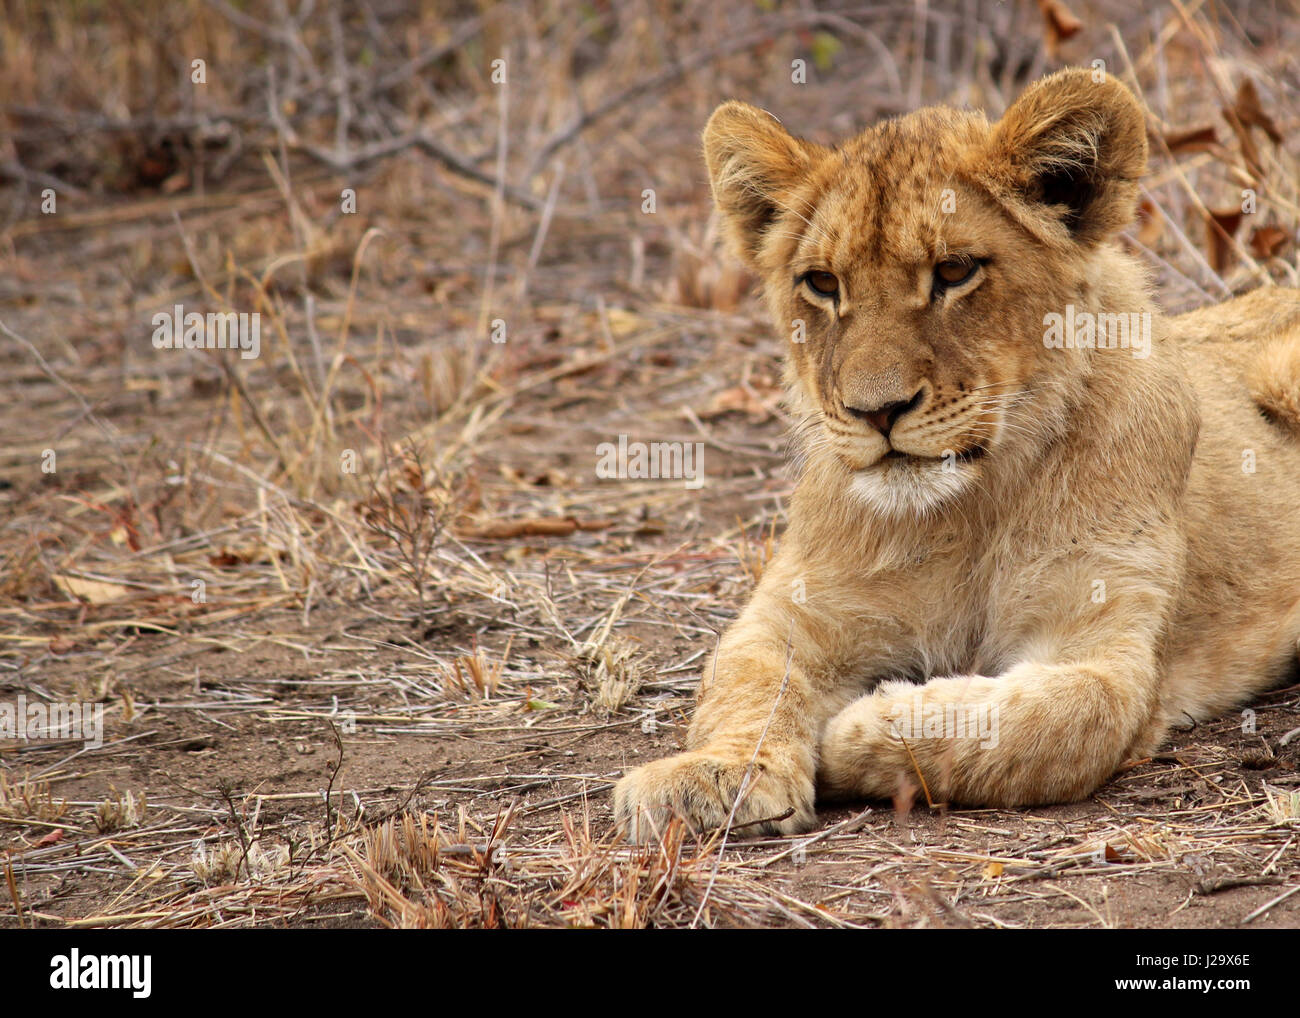 Stunning wild lion cub resting in the bush - Stock Image